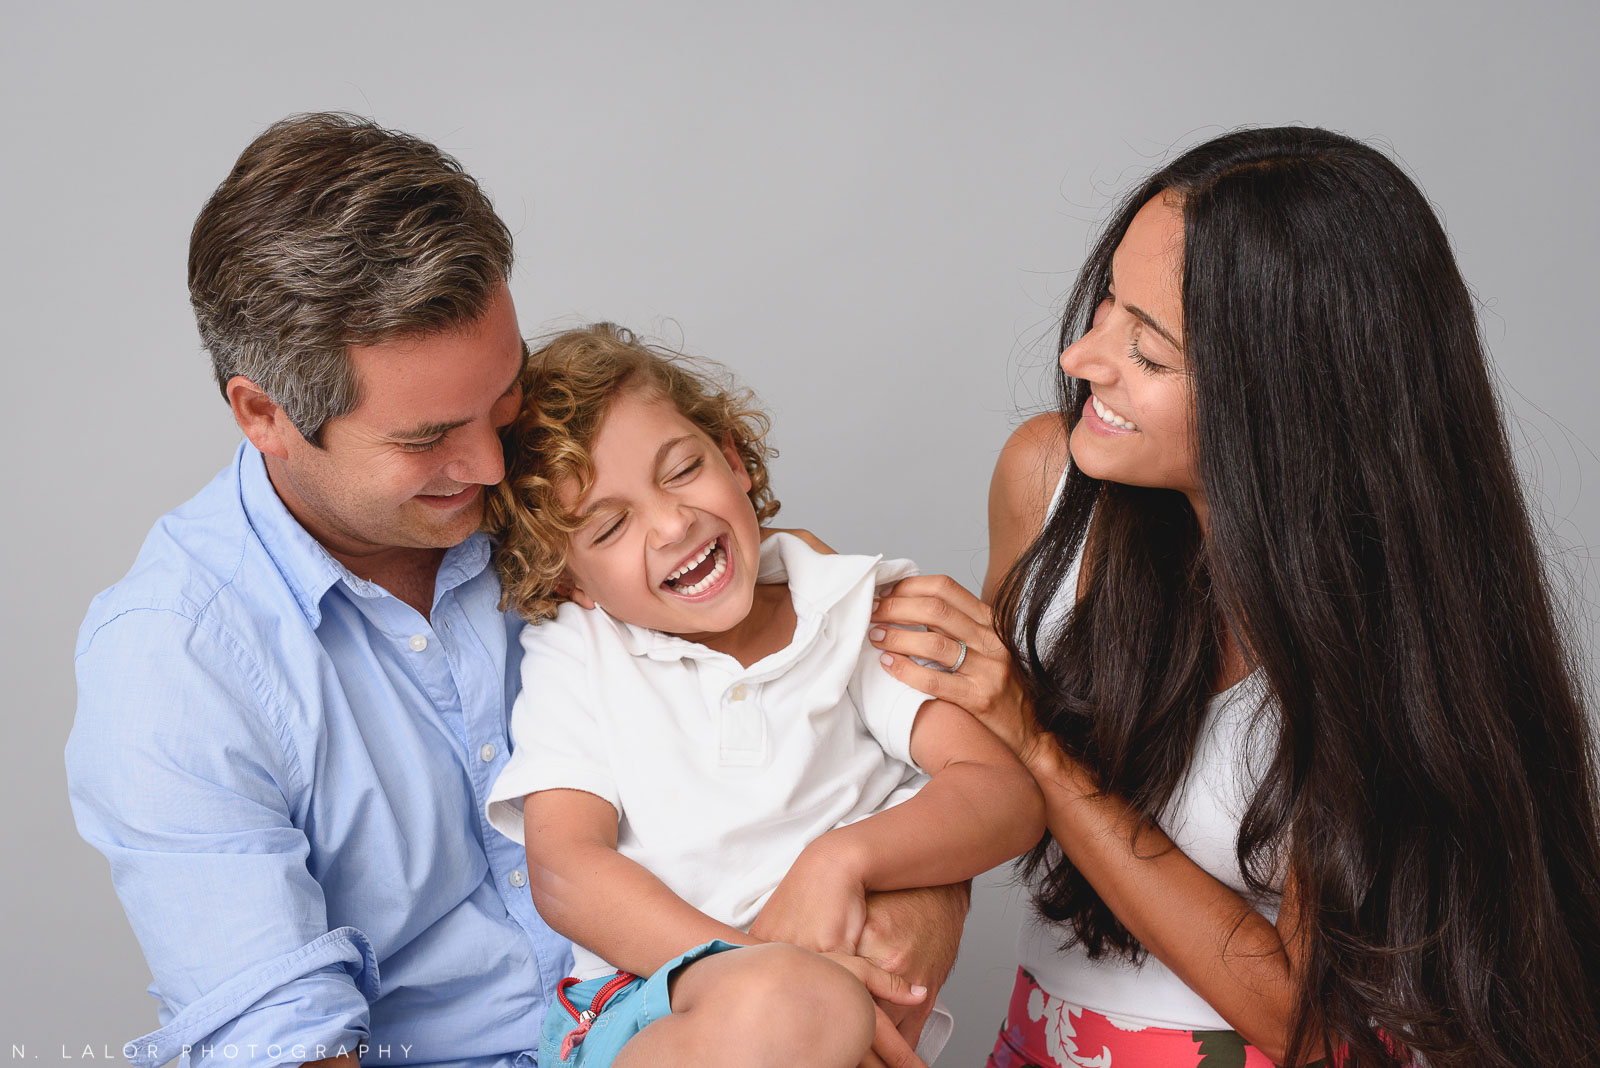 Image of Mom and Dad with their young boy, laughing. Studio family portrait by N. Lalor Photography in Greenwich, CT.